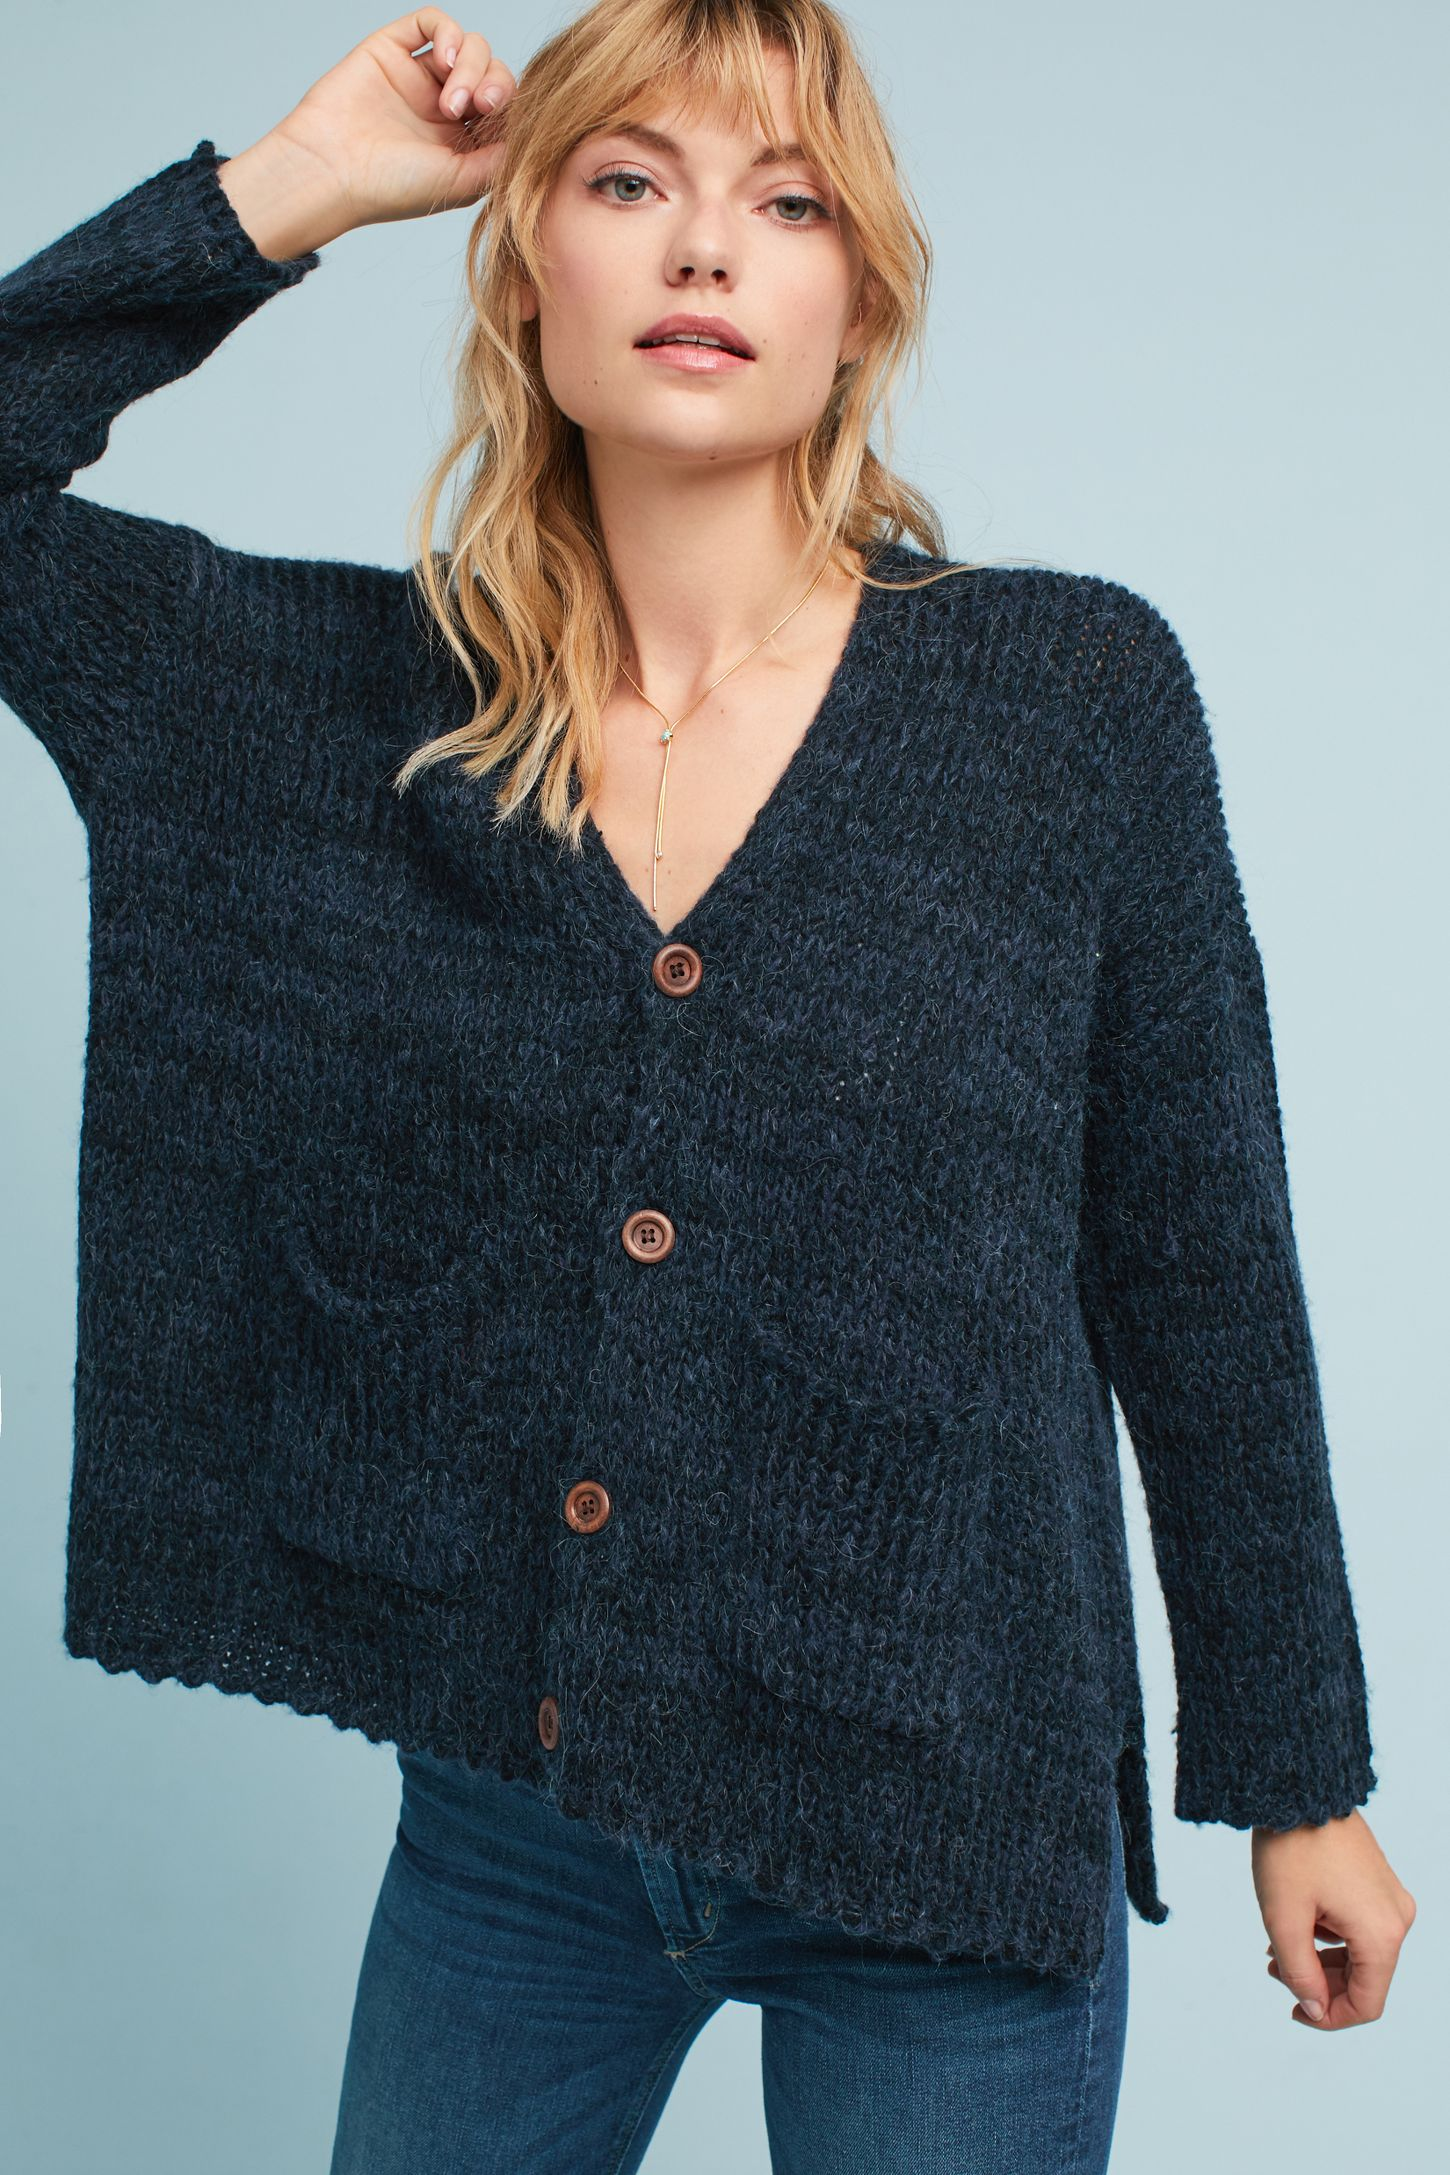 Blue - Cardigan Sweaters & Duster Cardigans | Anthropologie